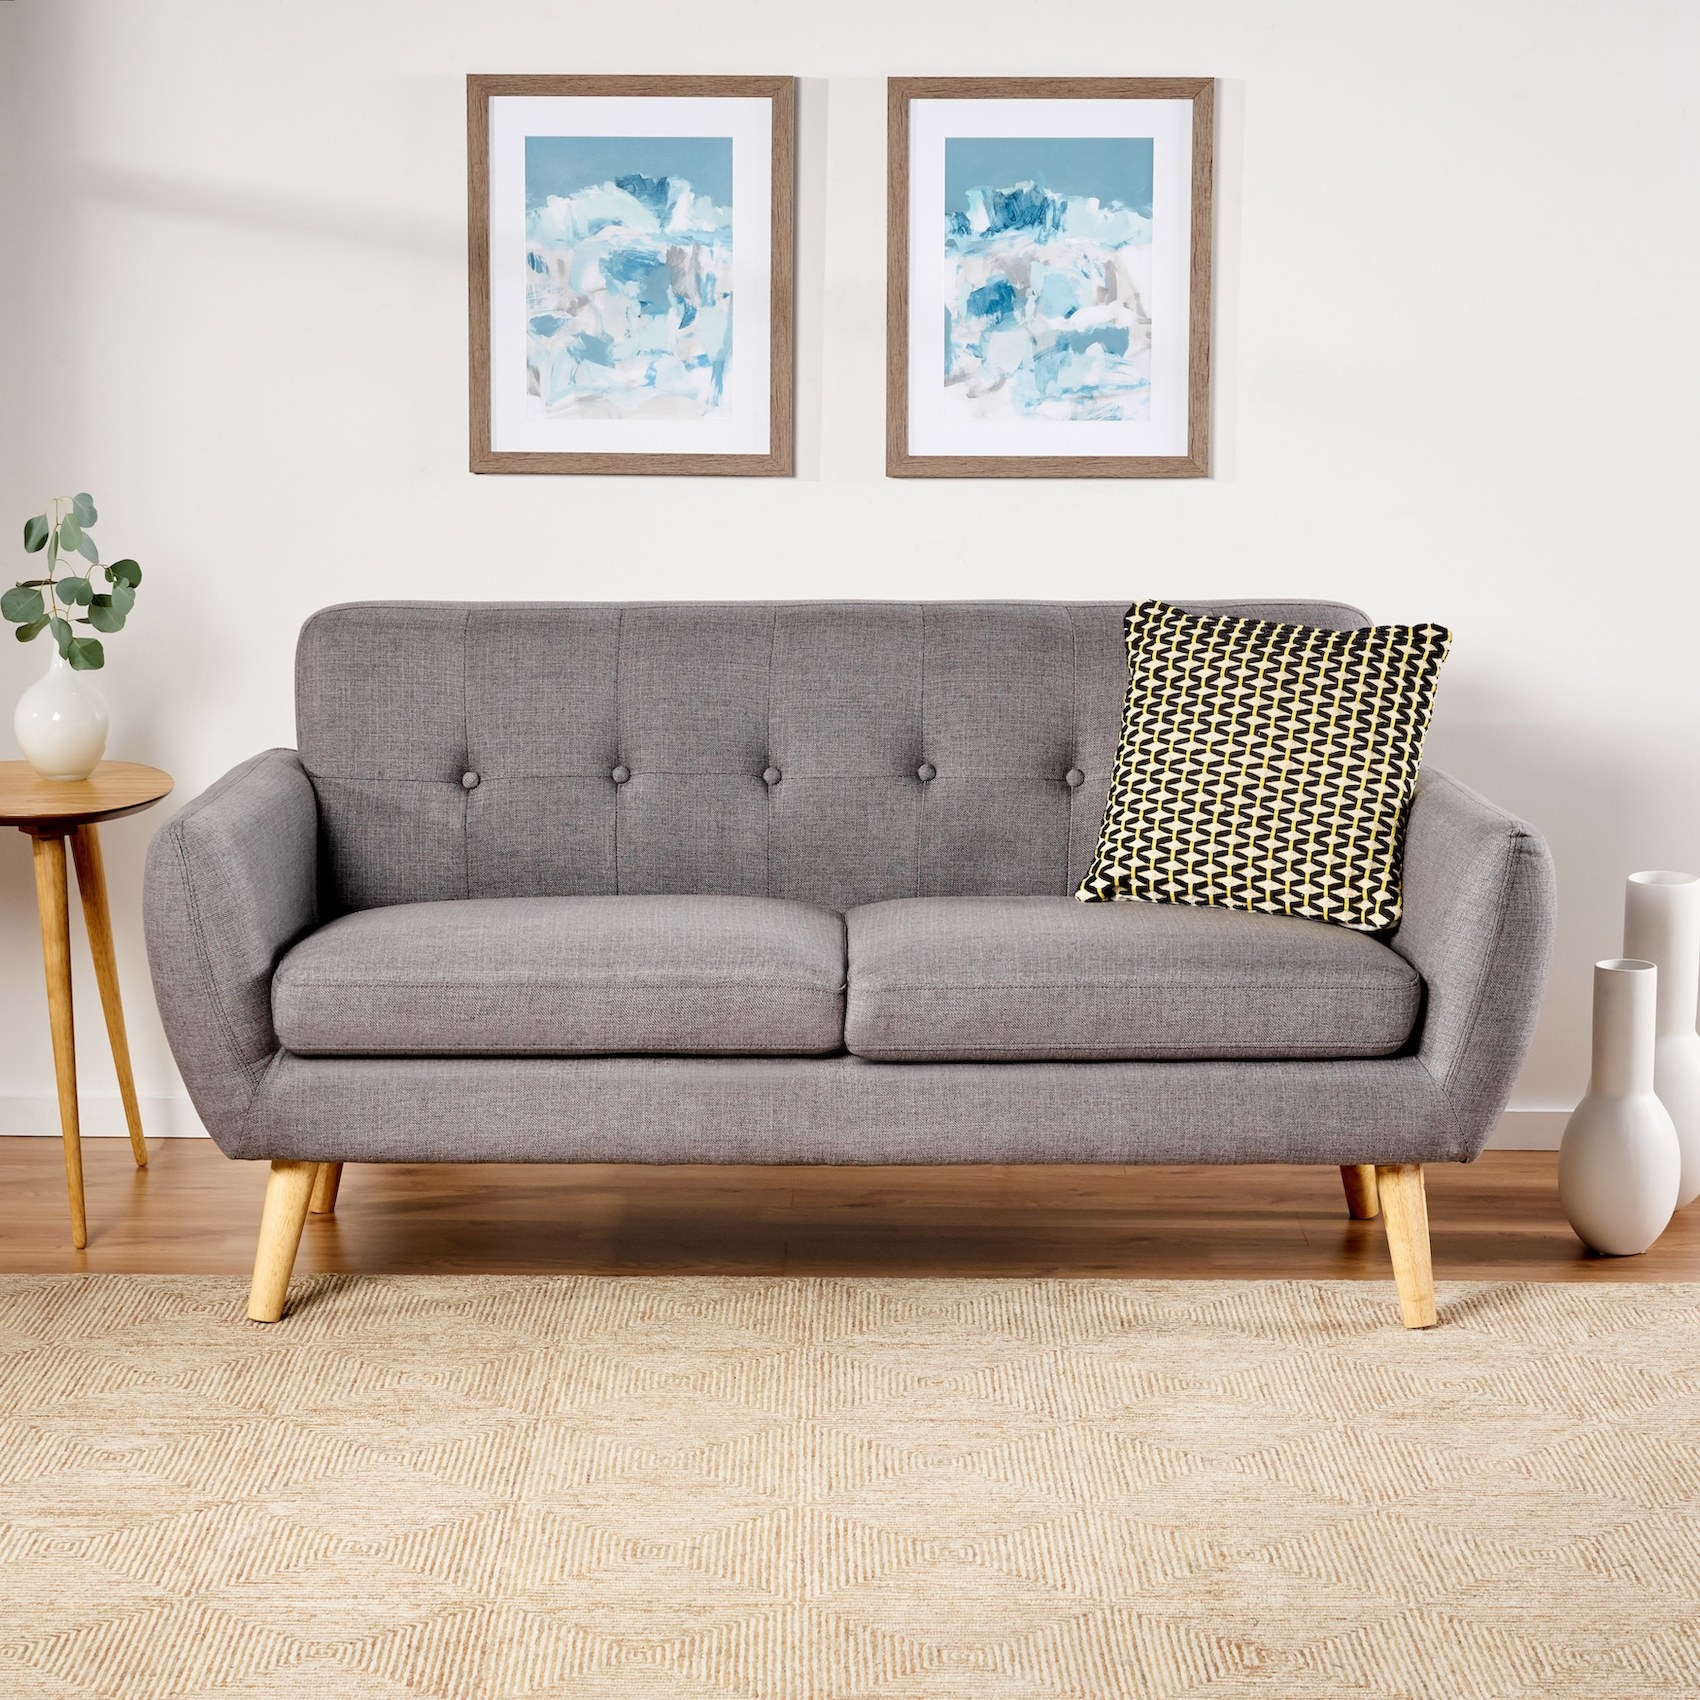 The gray sofa with button tufting on the back and light wooden legs